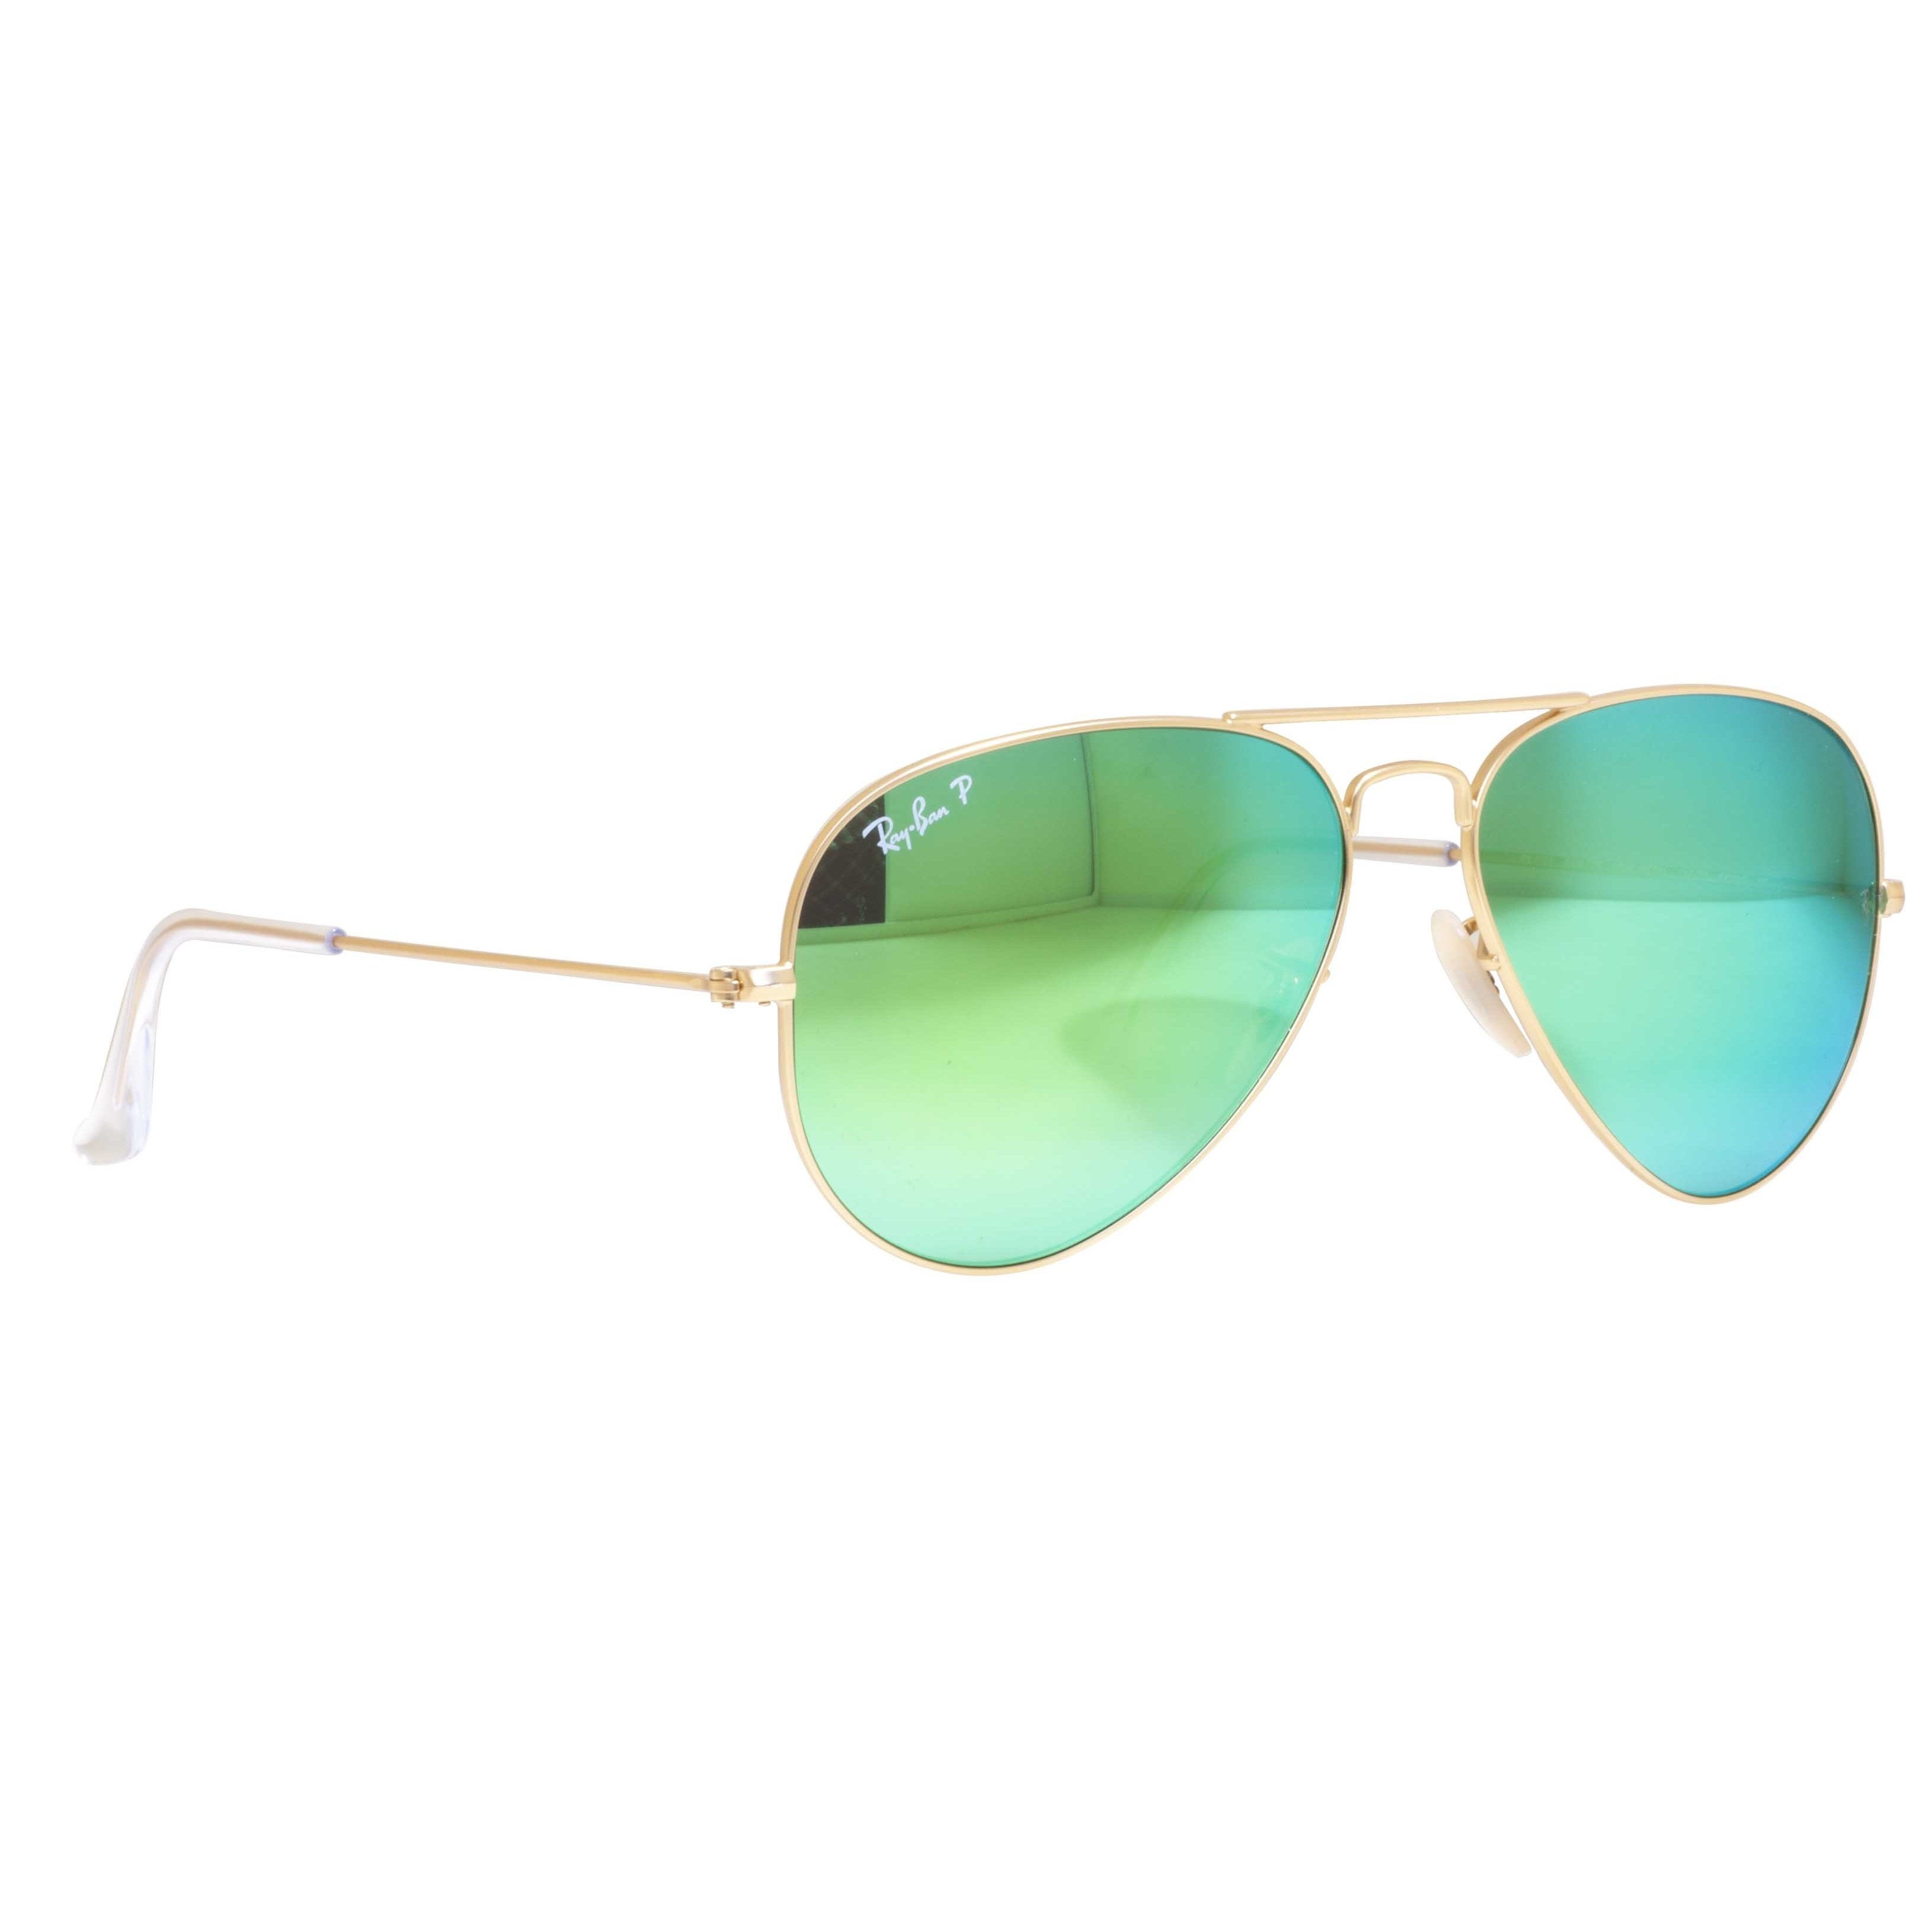 74f7ca616d4b8 Shop Ray-Ban Aviator RB3025 Unisex Gold Frame Green Flash Polarized Lens  Sunglasses - Free Shipping Today - Overstock - 9375463